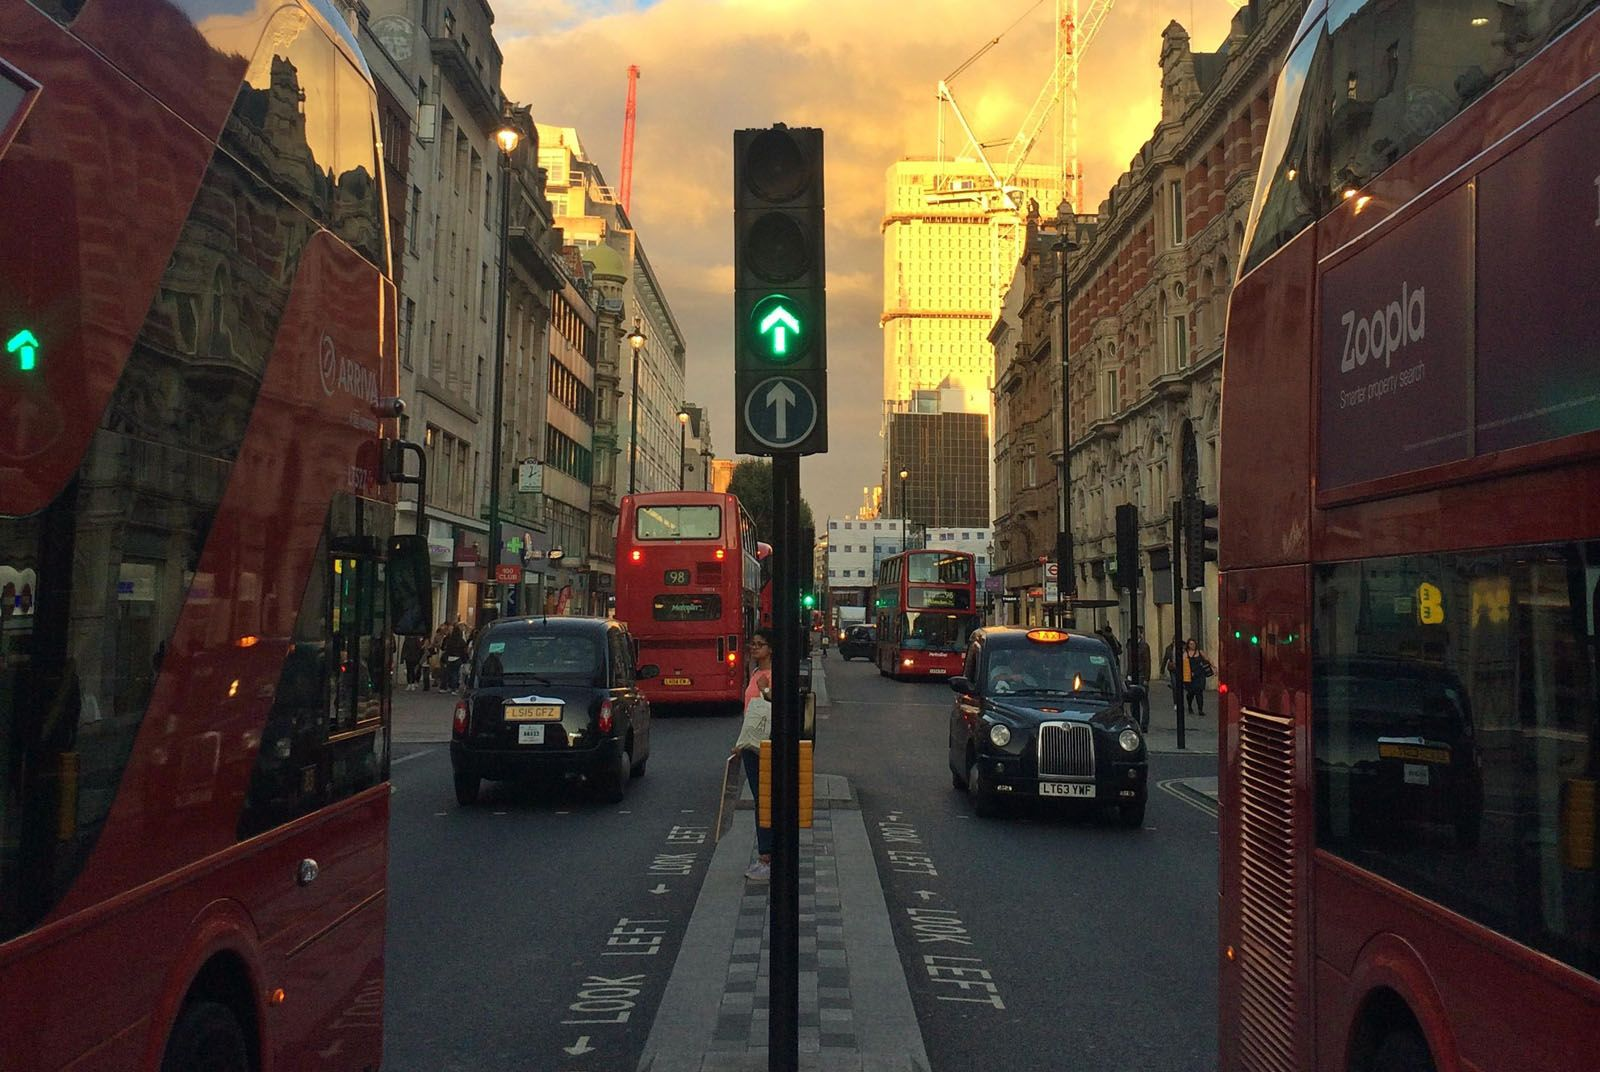 Buses and taxis in a London street at dusk